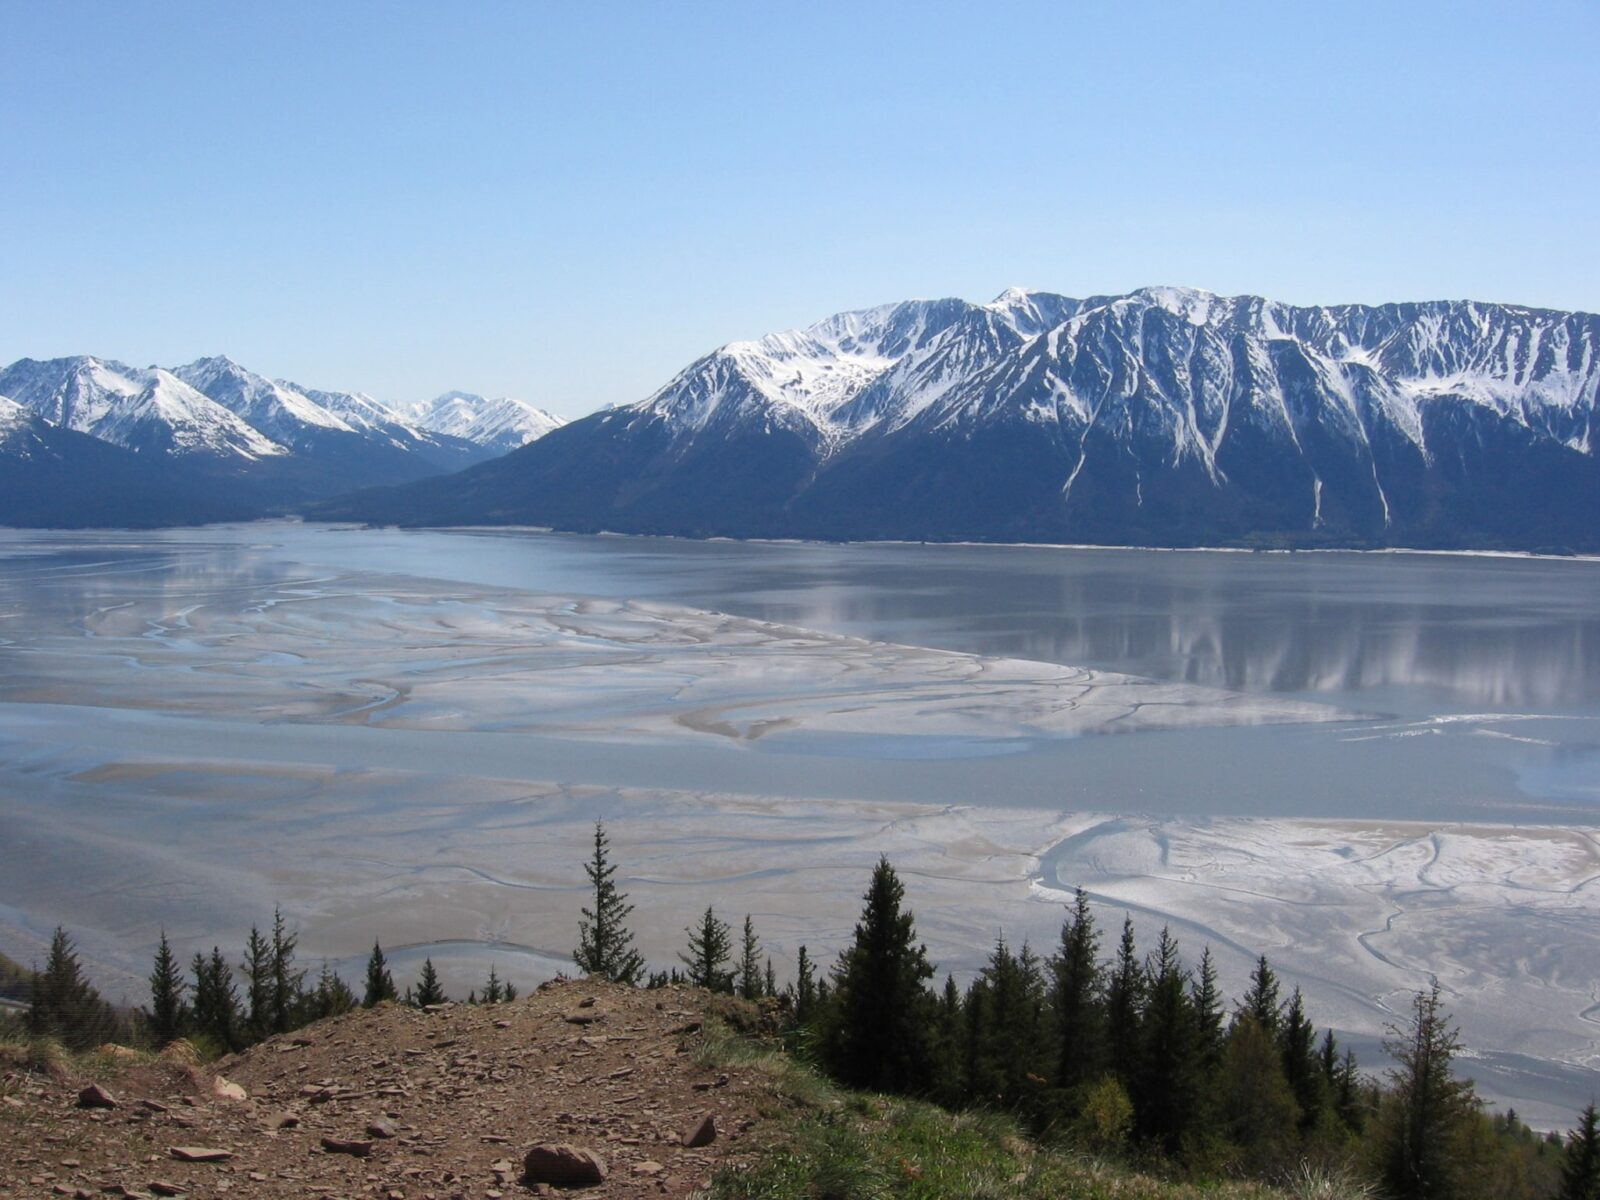 Hiking is one of the best things to do in Anchorage and the Bird Ridge Trail is a tough but spectacular view hike with this view of tideflats, water and across the water mountains with some snow on top